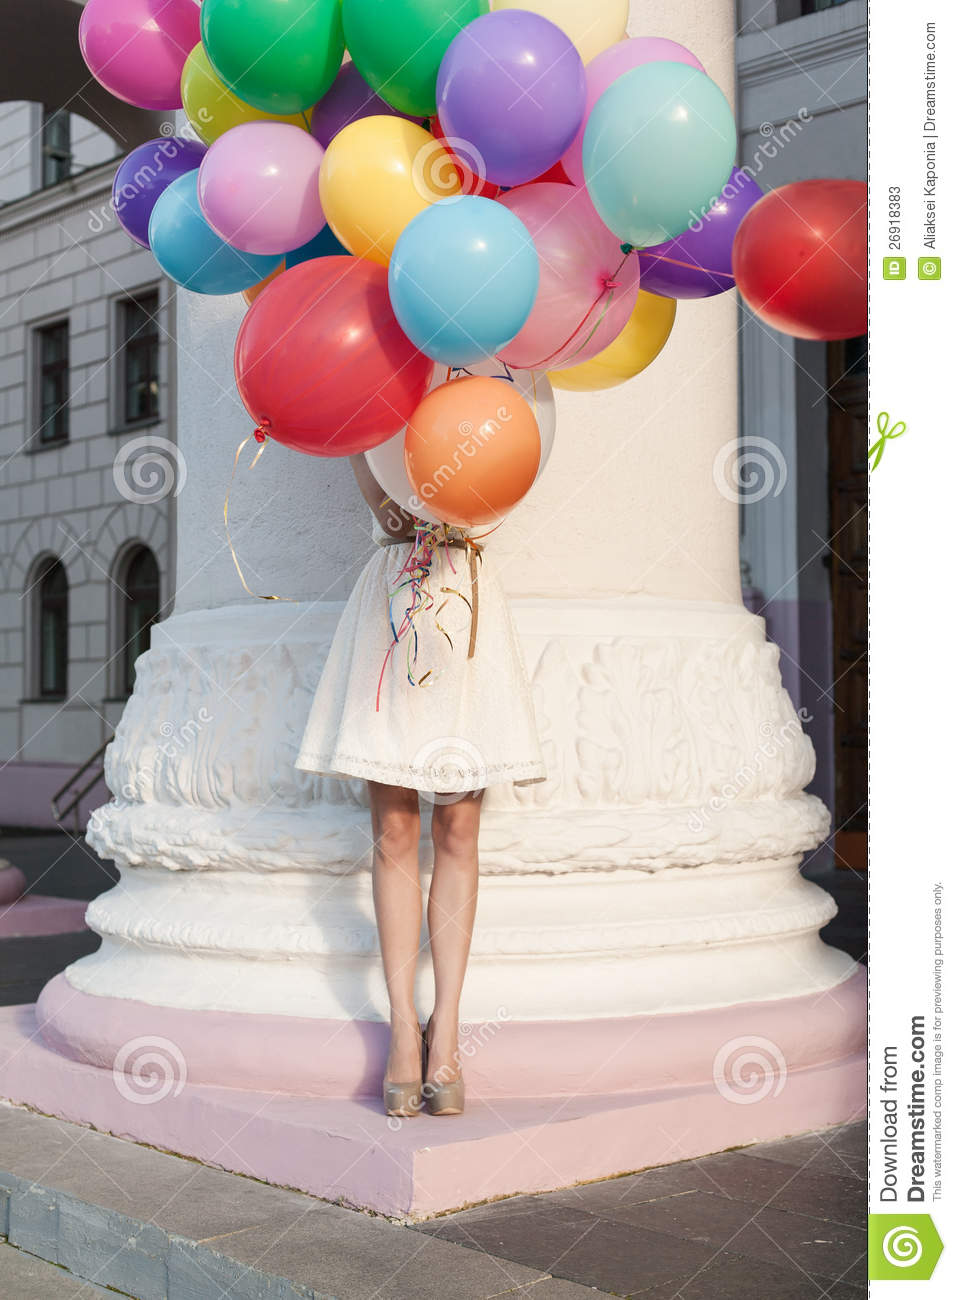 Cute Indian Girl Child Wallpaper Woman With Balloons Stock Image Image Of Cute People